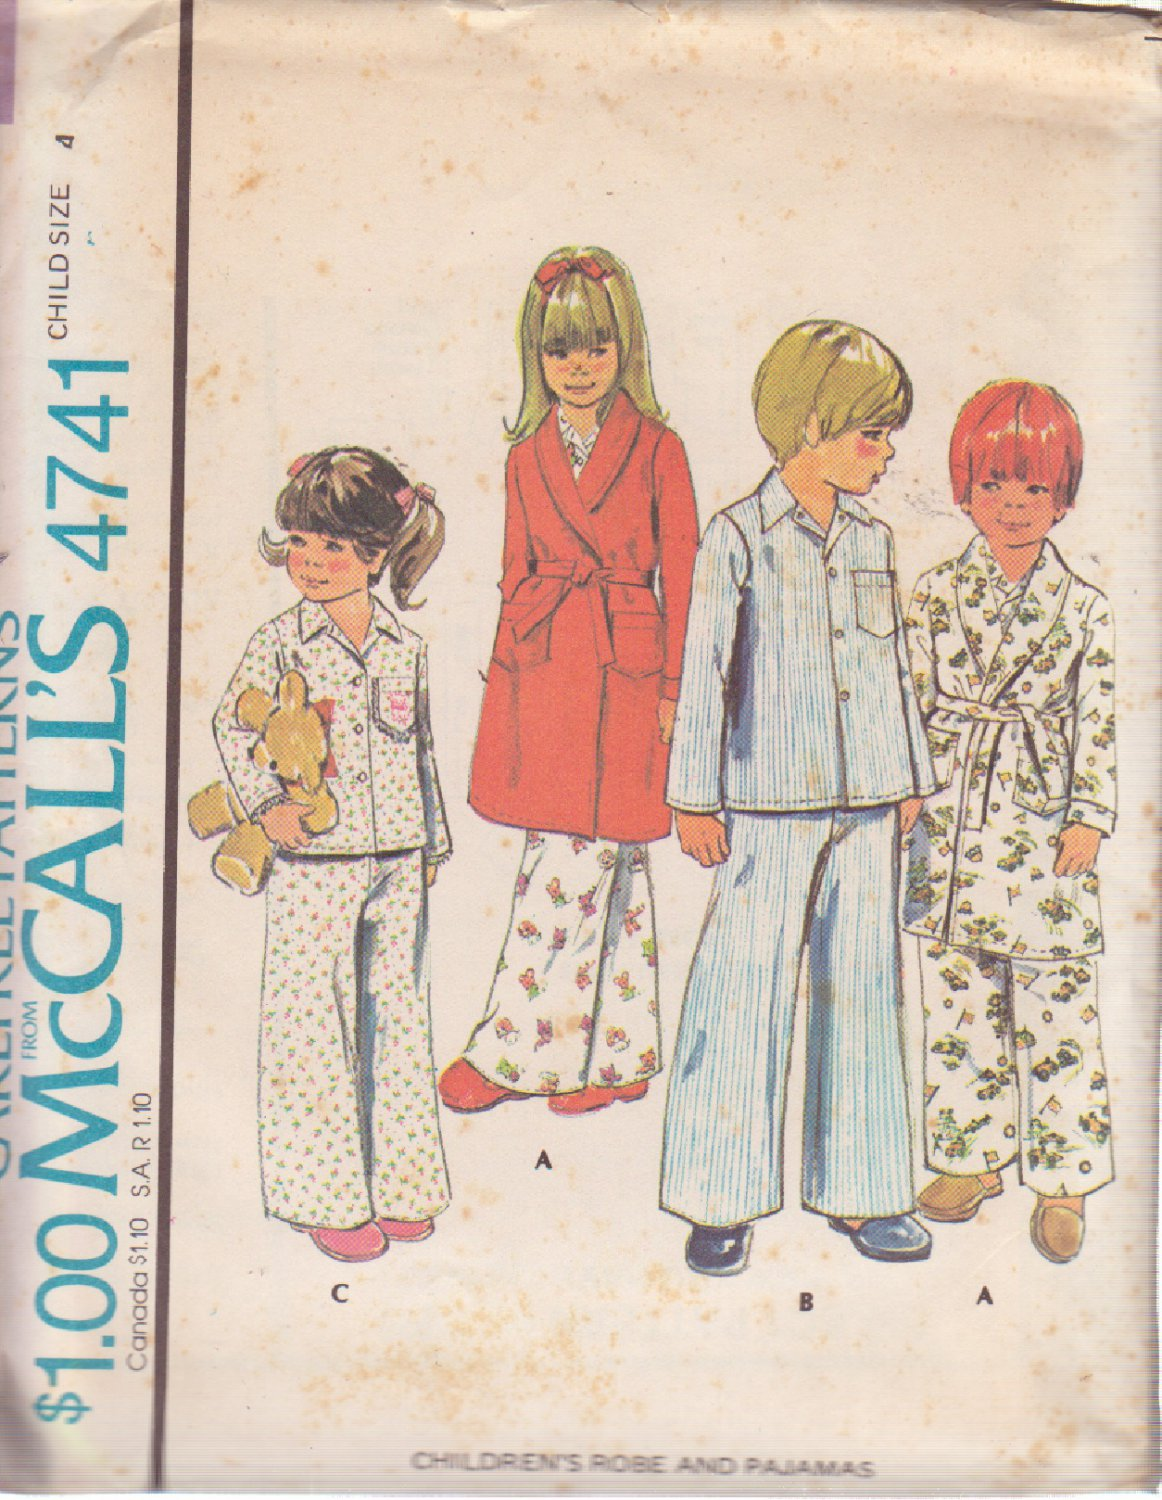 McCALL'S 1975 PATTERN 4741 SIZE 4 UNISEX CHILD'S ROBE AND PAJAMAS